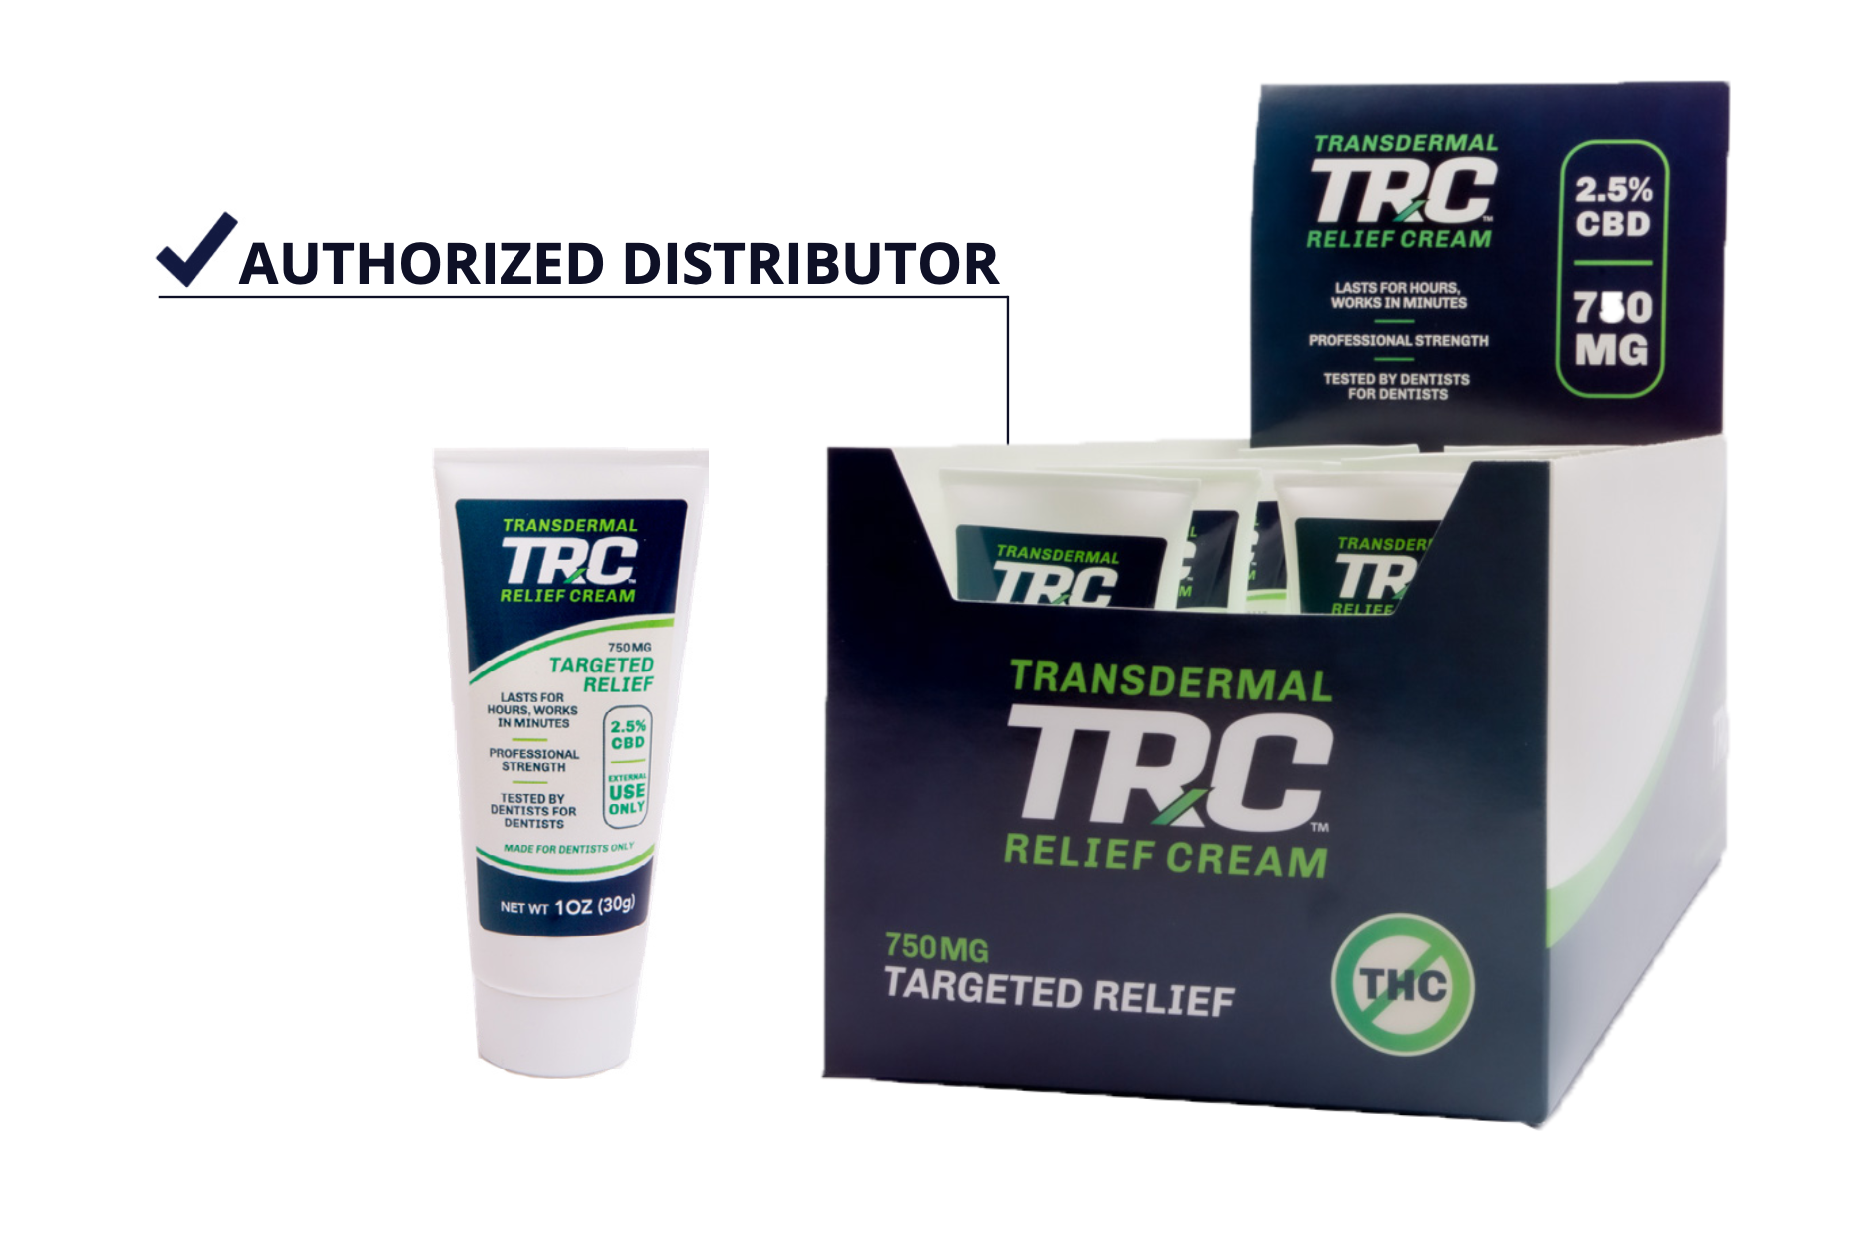 Sterngold Adds Holistic Dental Relief Product, TRC